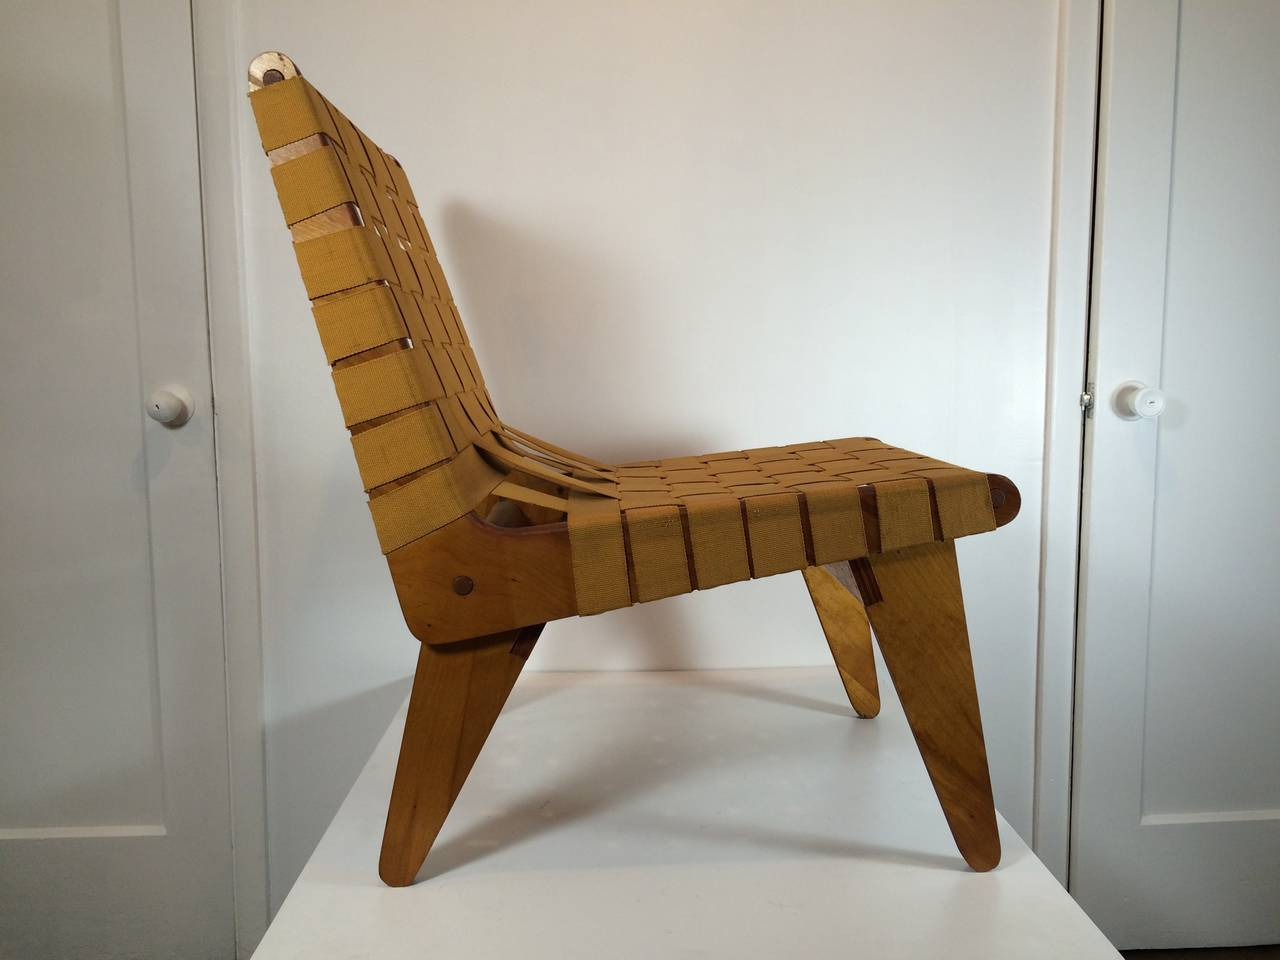 1949 Klaus Grabe Handmade Lounge Chair 4